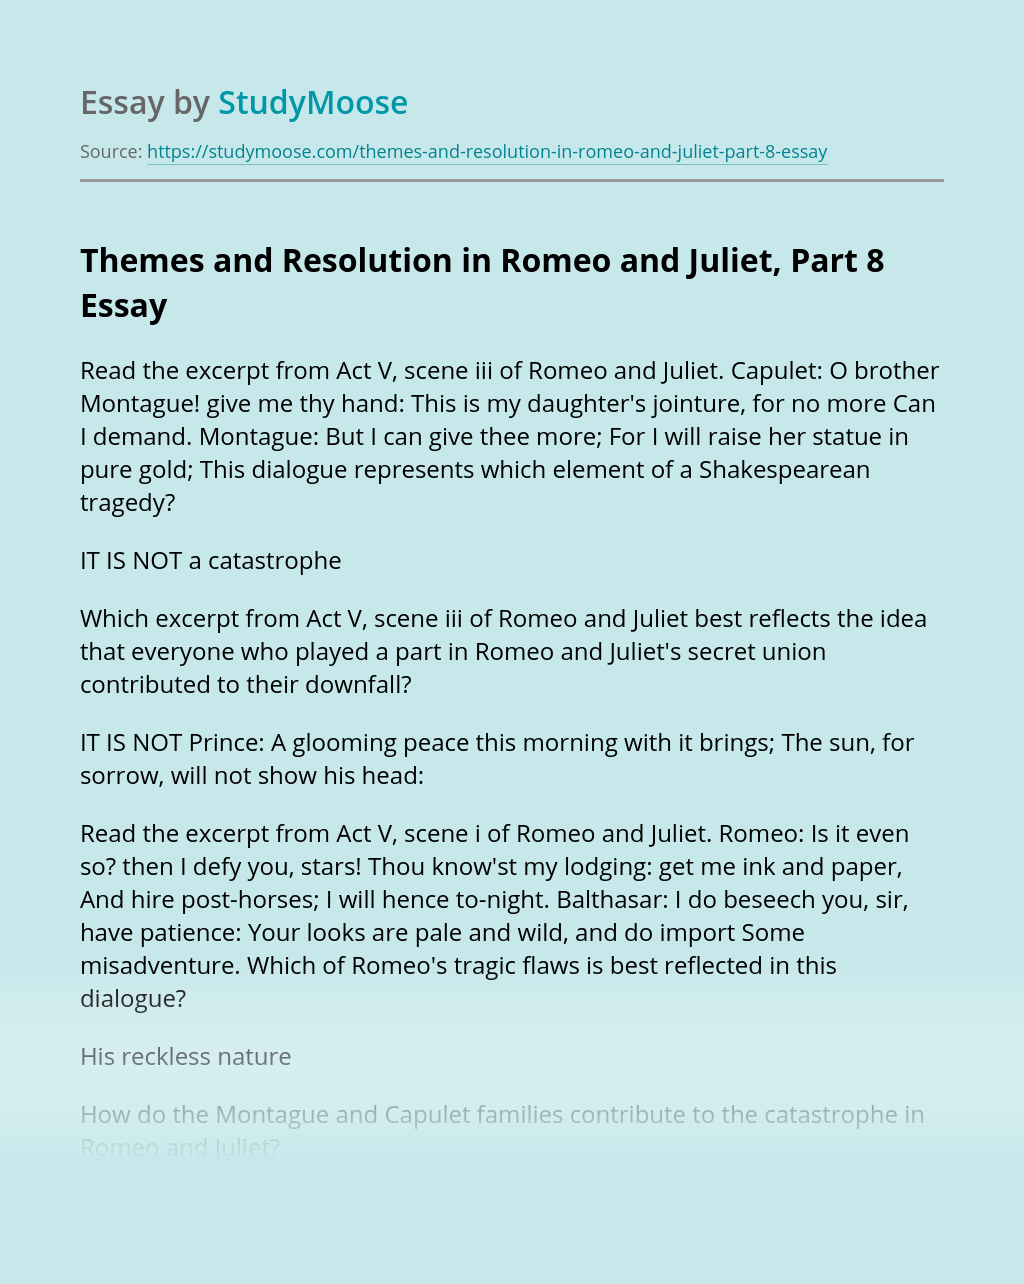 Themes and Resolution in Romeo and Juliet, Part 8